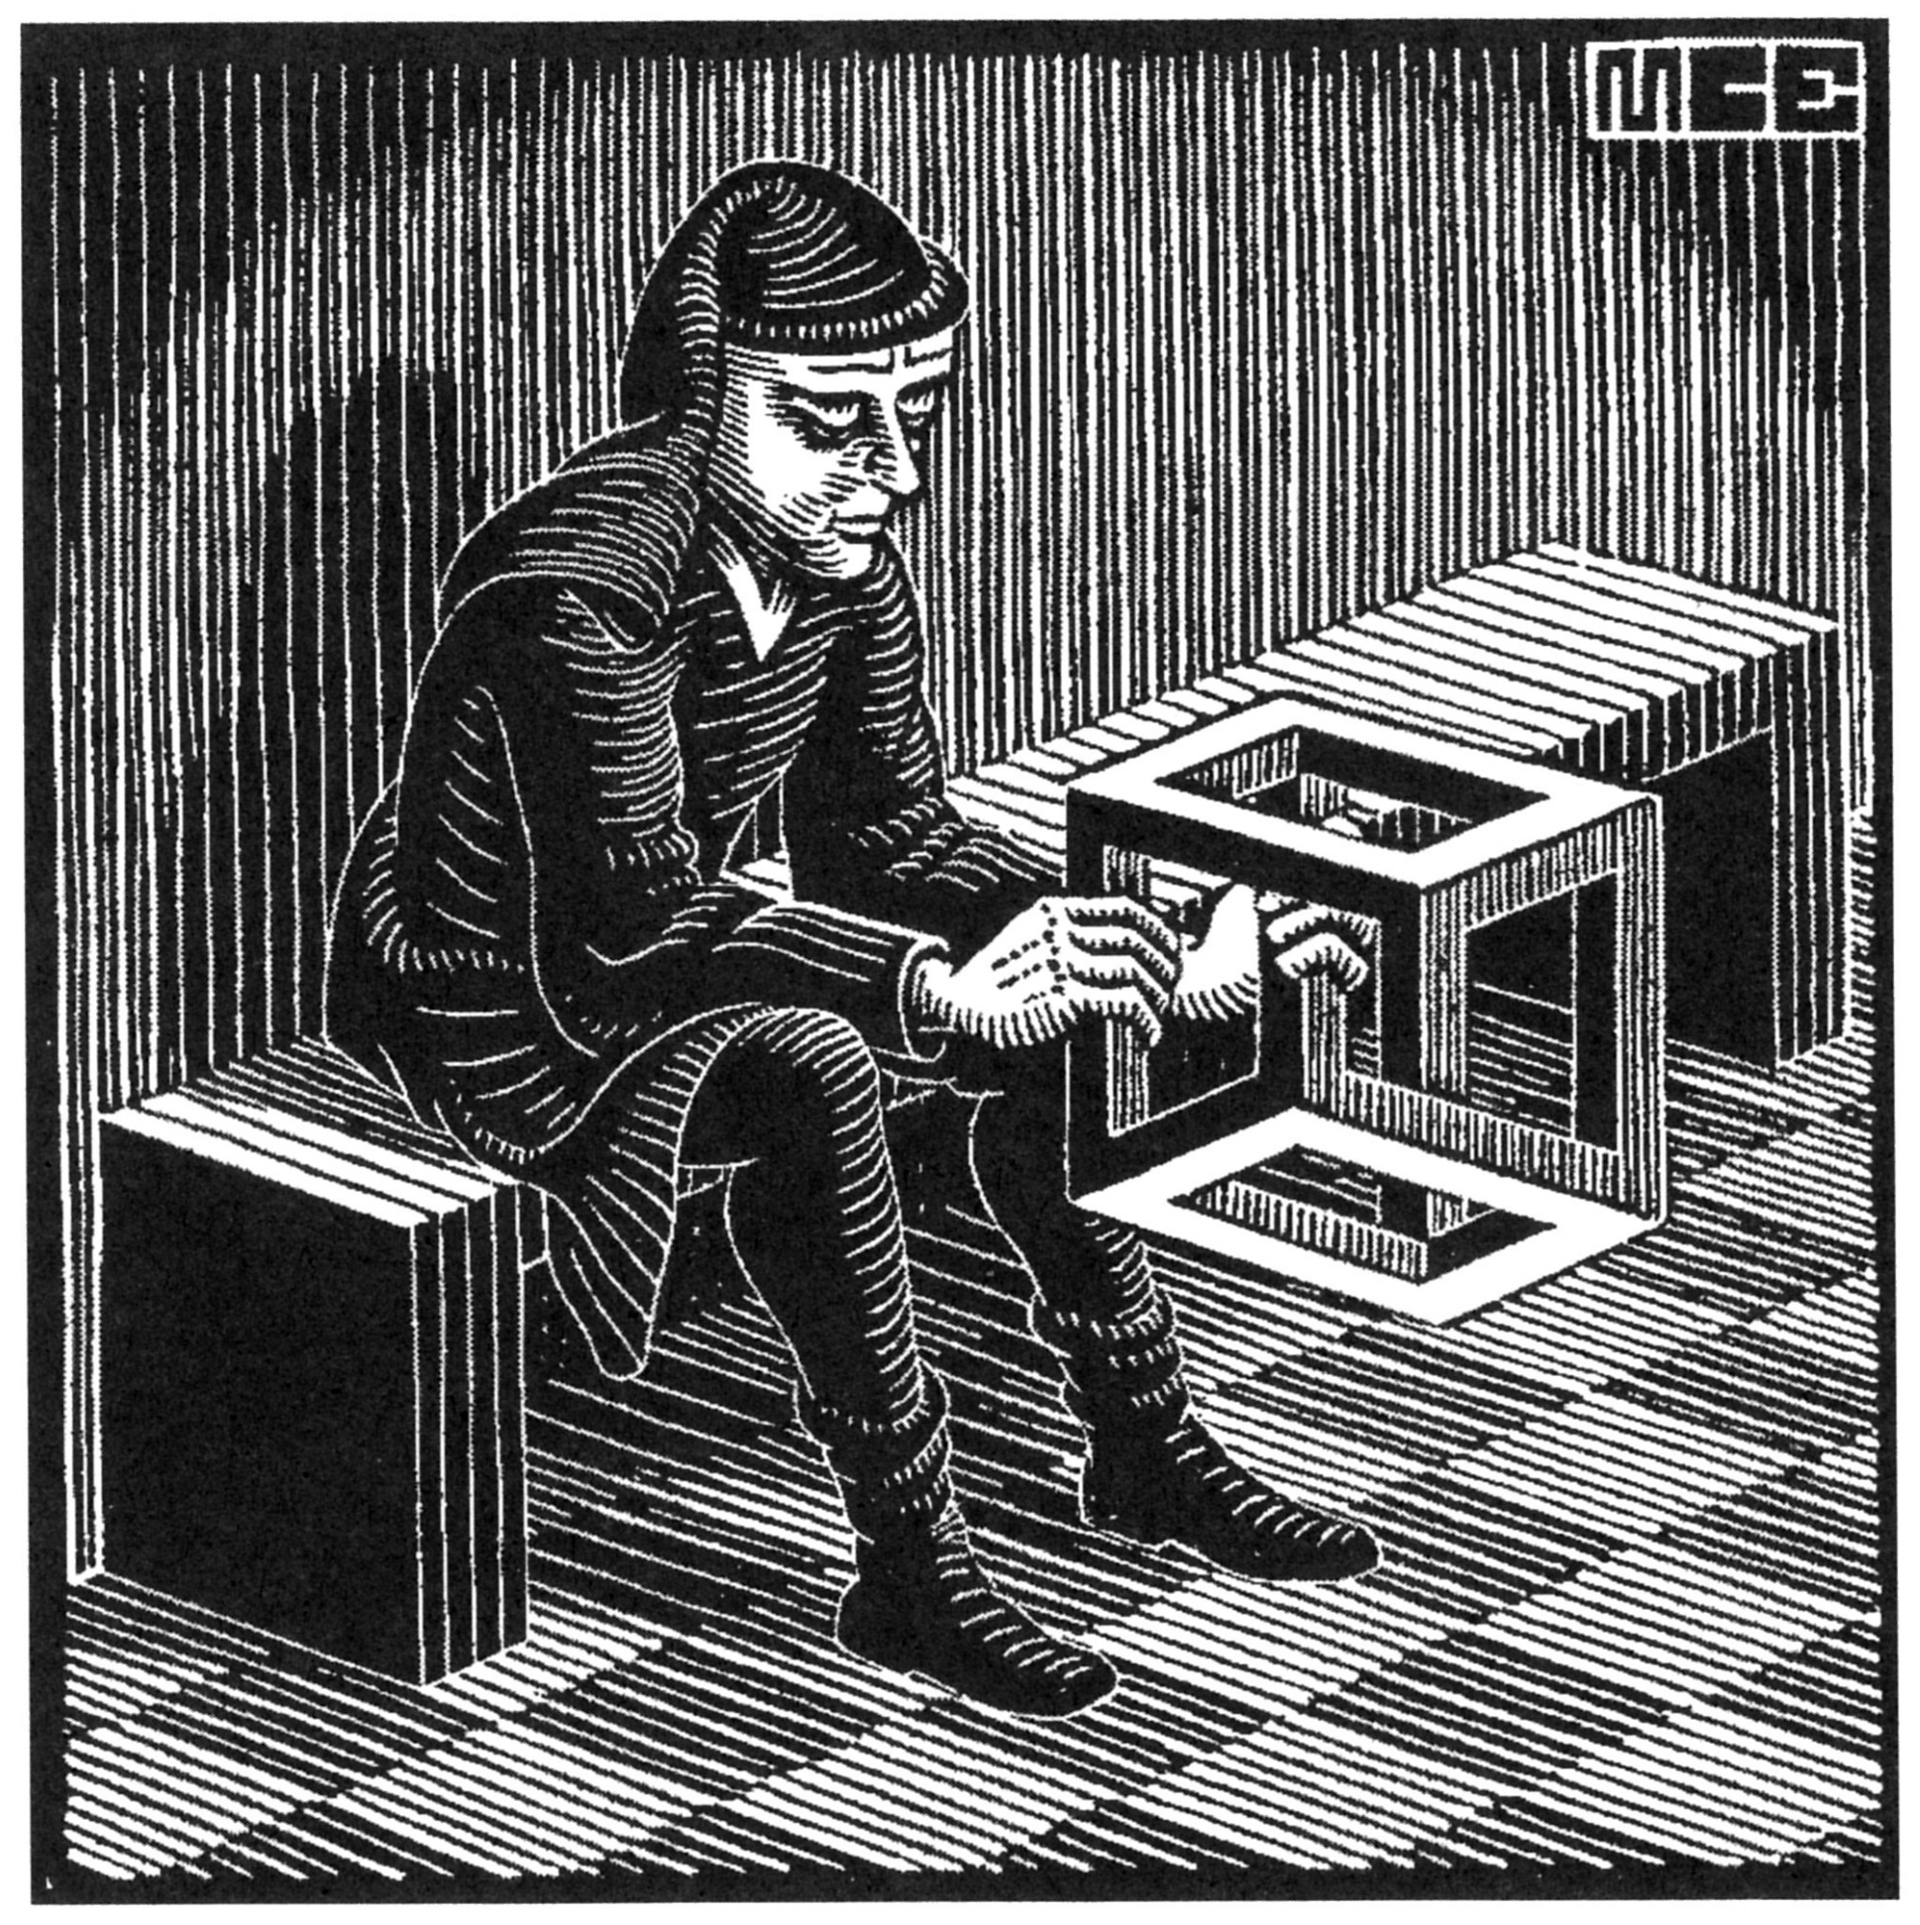 Man with Cube by M.C. Escher